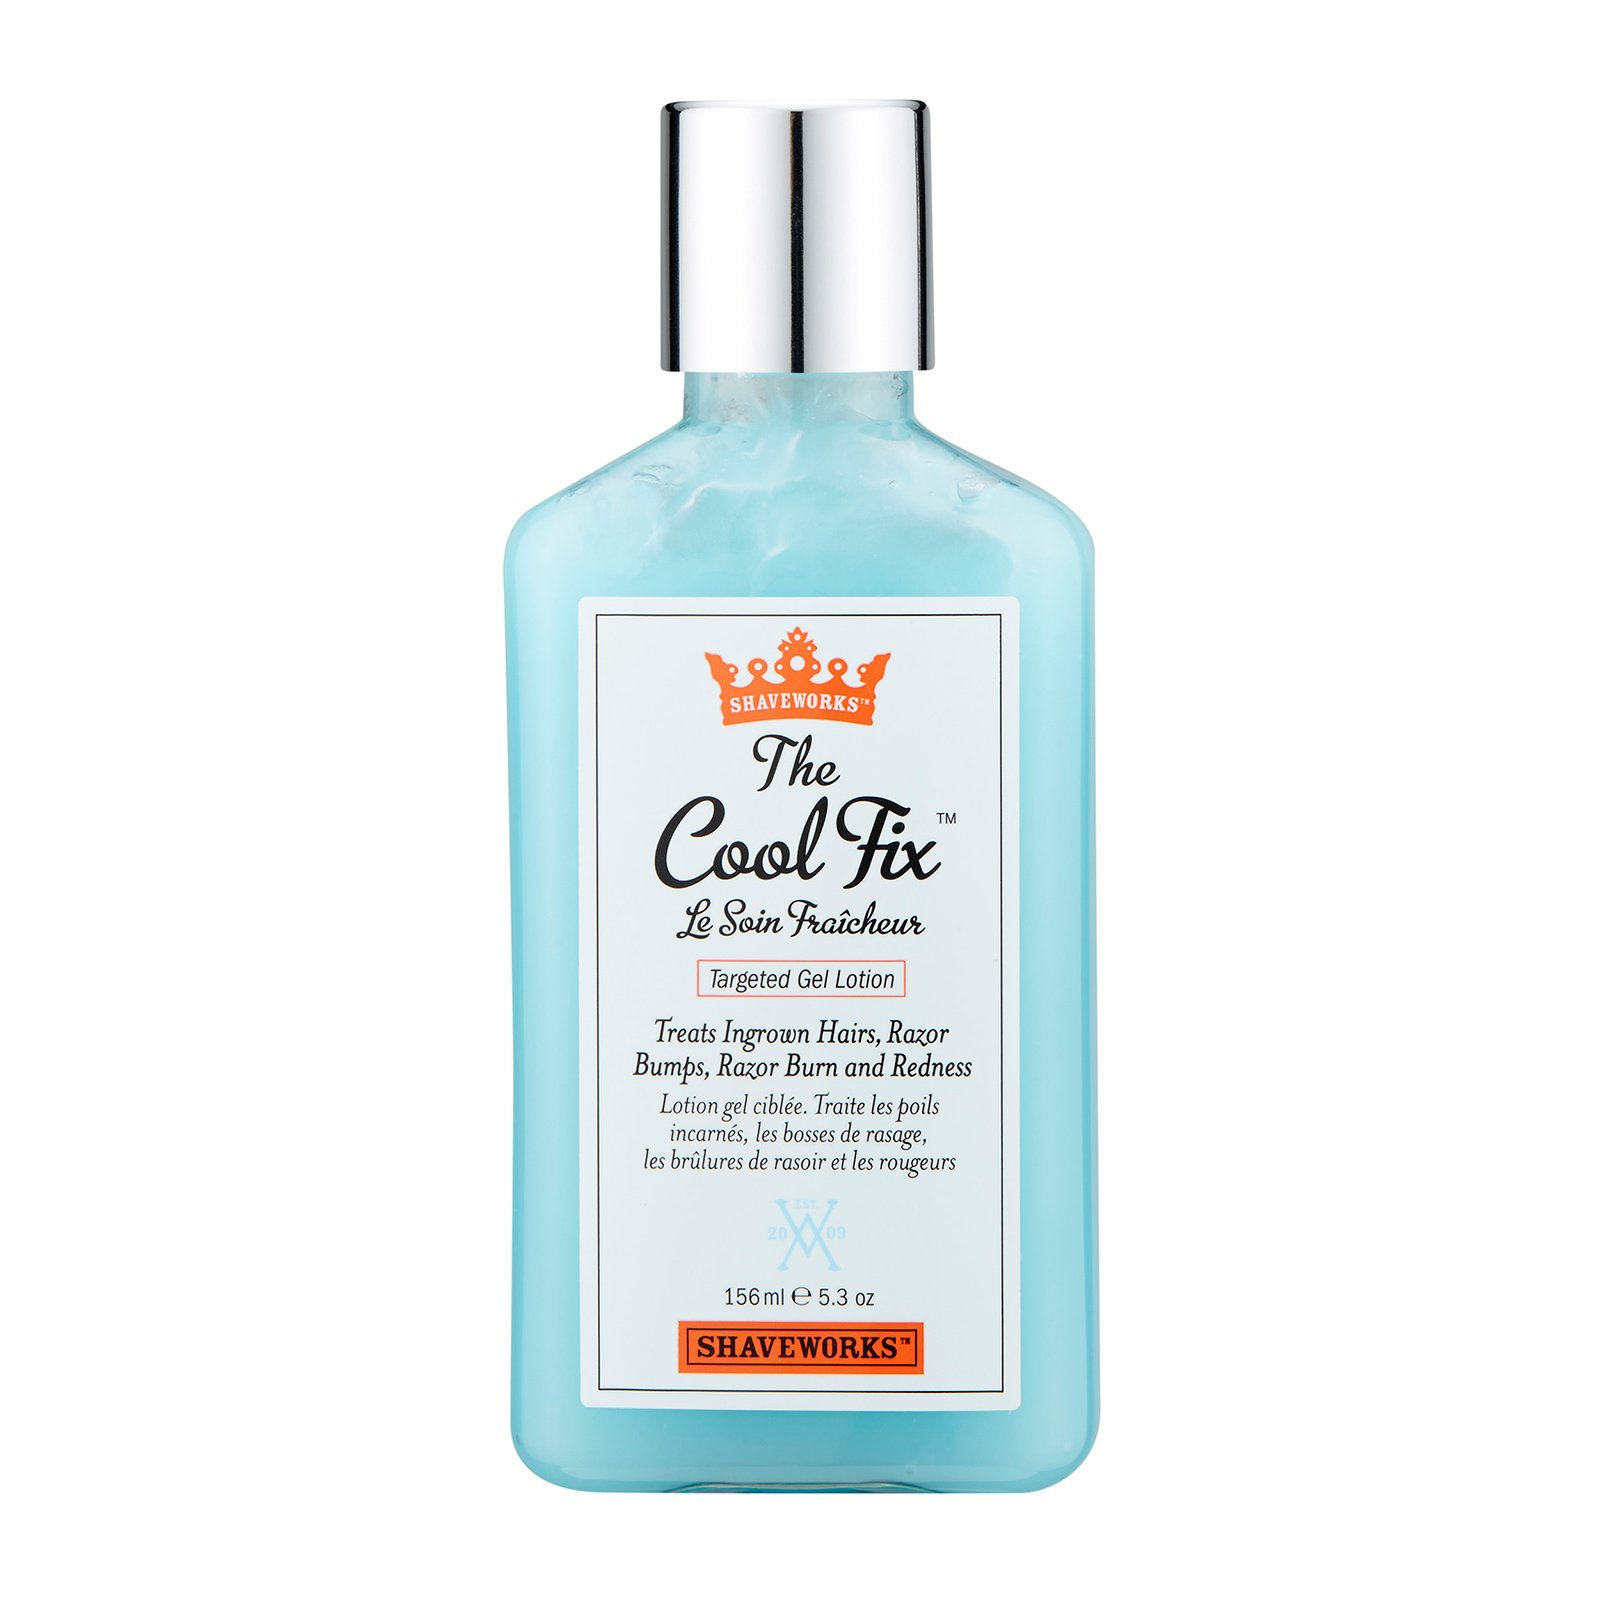 Anthony Shaveworks The Cool Fix™ Targeted Gel Lotion 5.3oz, 156ml ALX0100011-000-00